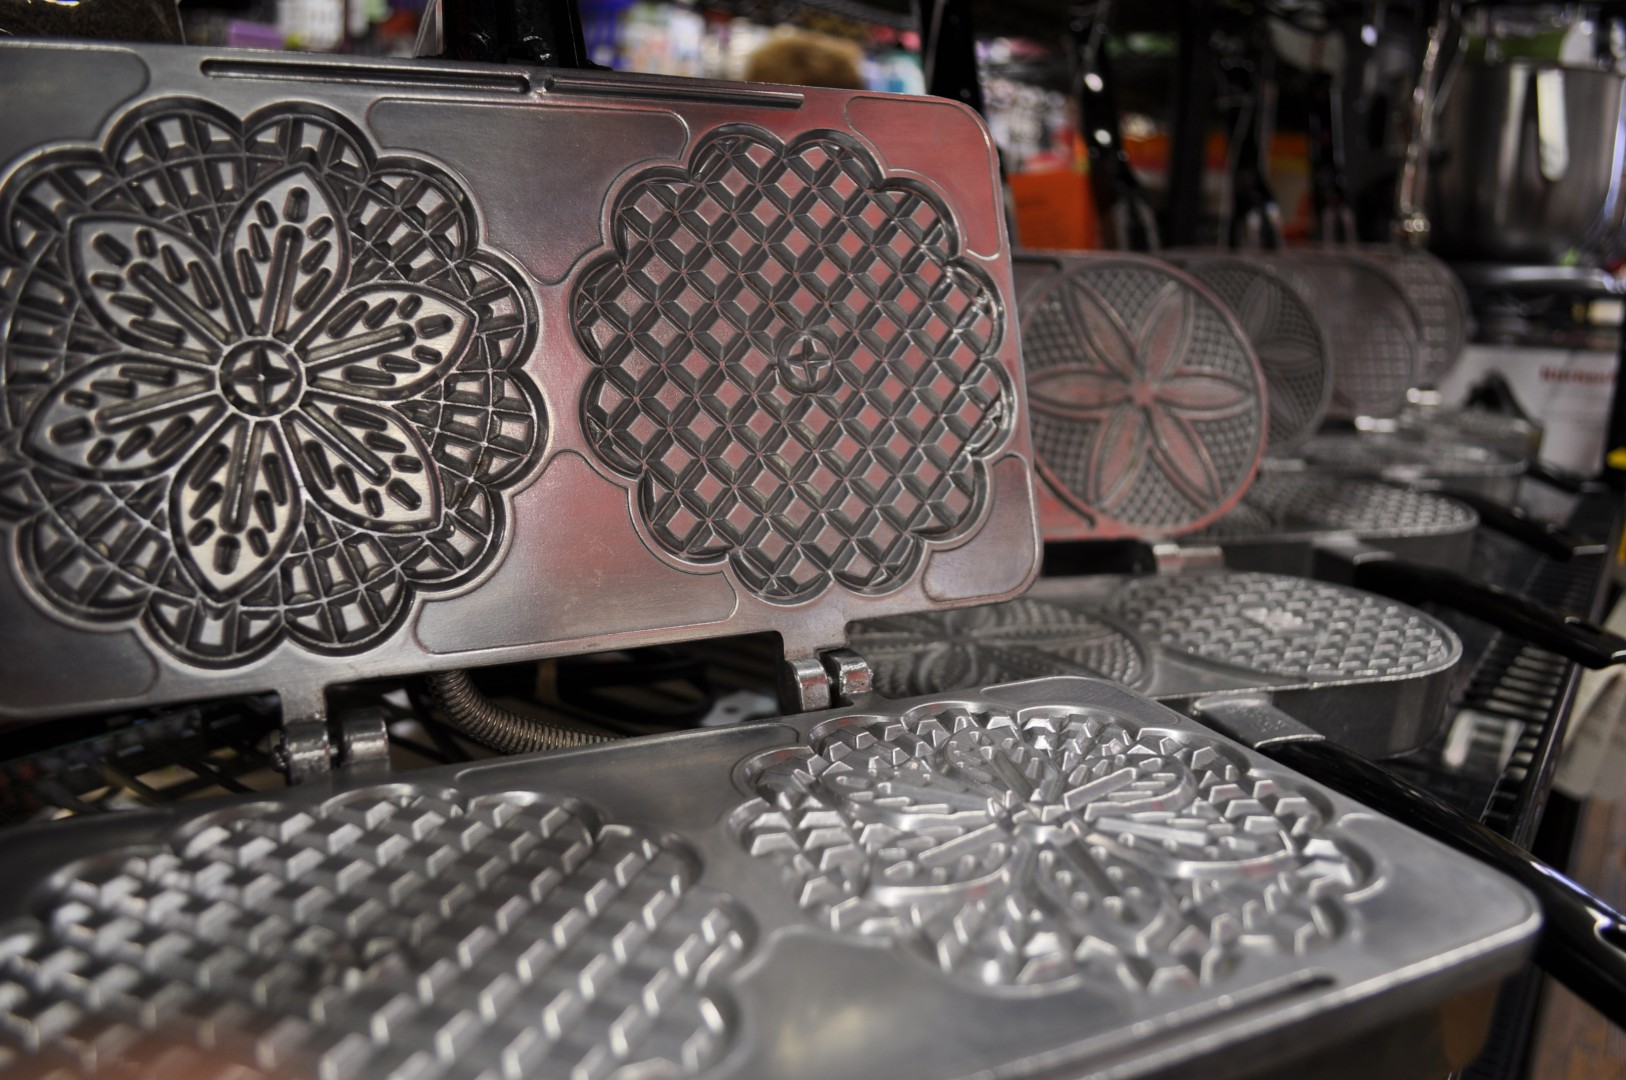 Cucinapro Multi-baker With Interchangeable Plates How To Choose The Pizzelle Iron That S Right For You Fante S Kitchen